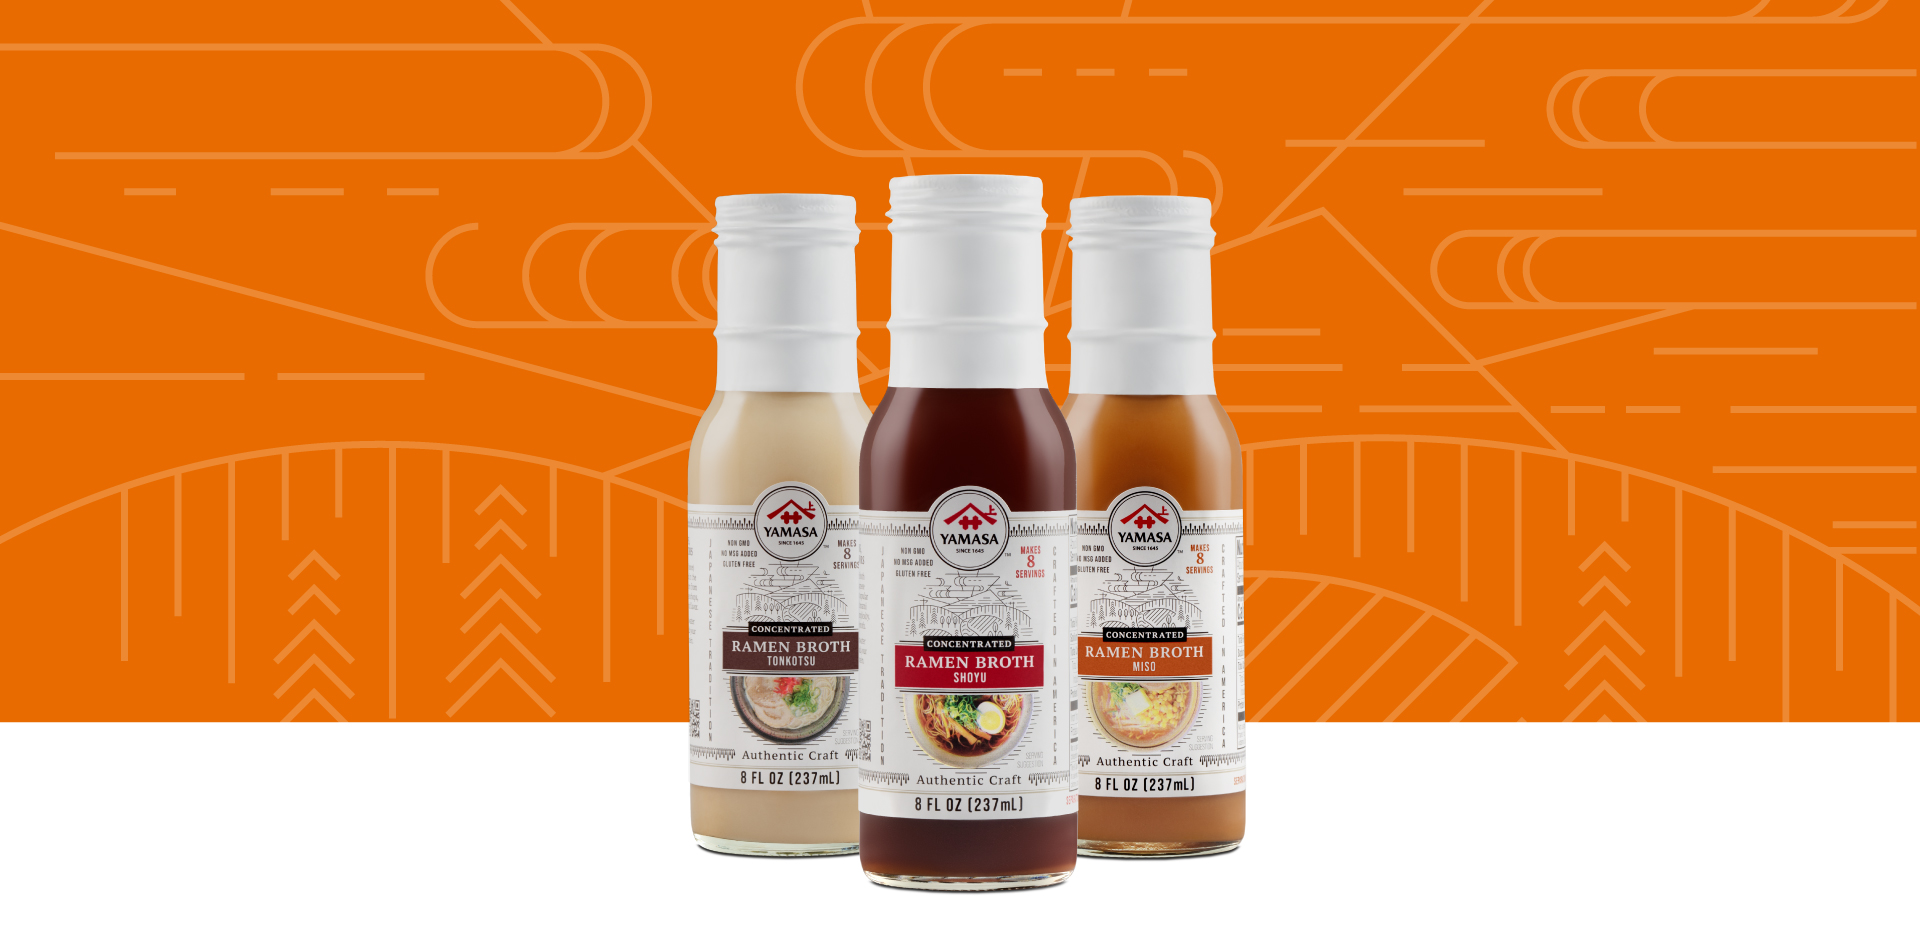 Product image of the Yamasa Ramen Broth Series including Ramen Broth Tonkotsu, Ramen Broth Shoyu and Ramen Broth Miso set against an illustrative background.